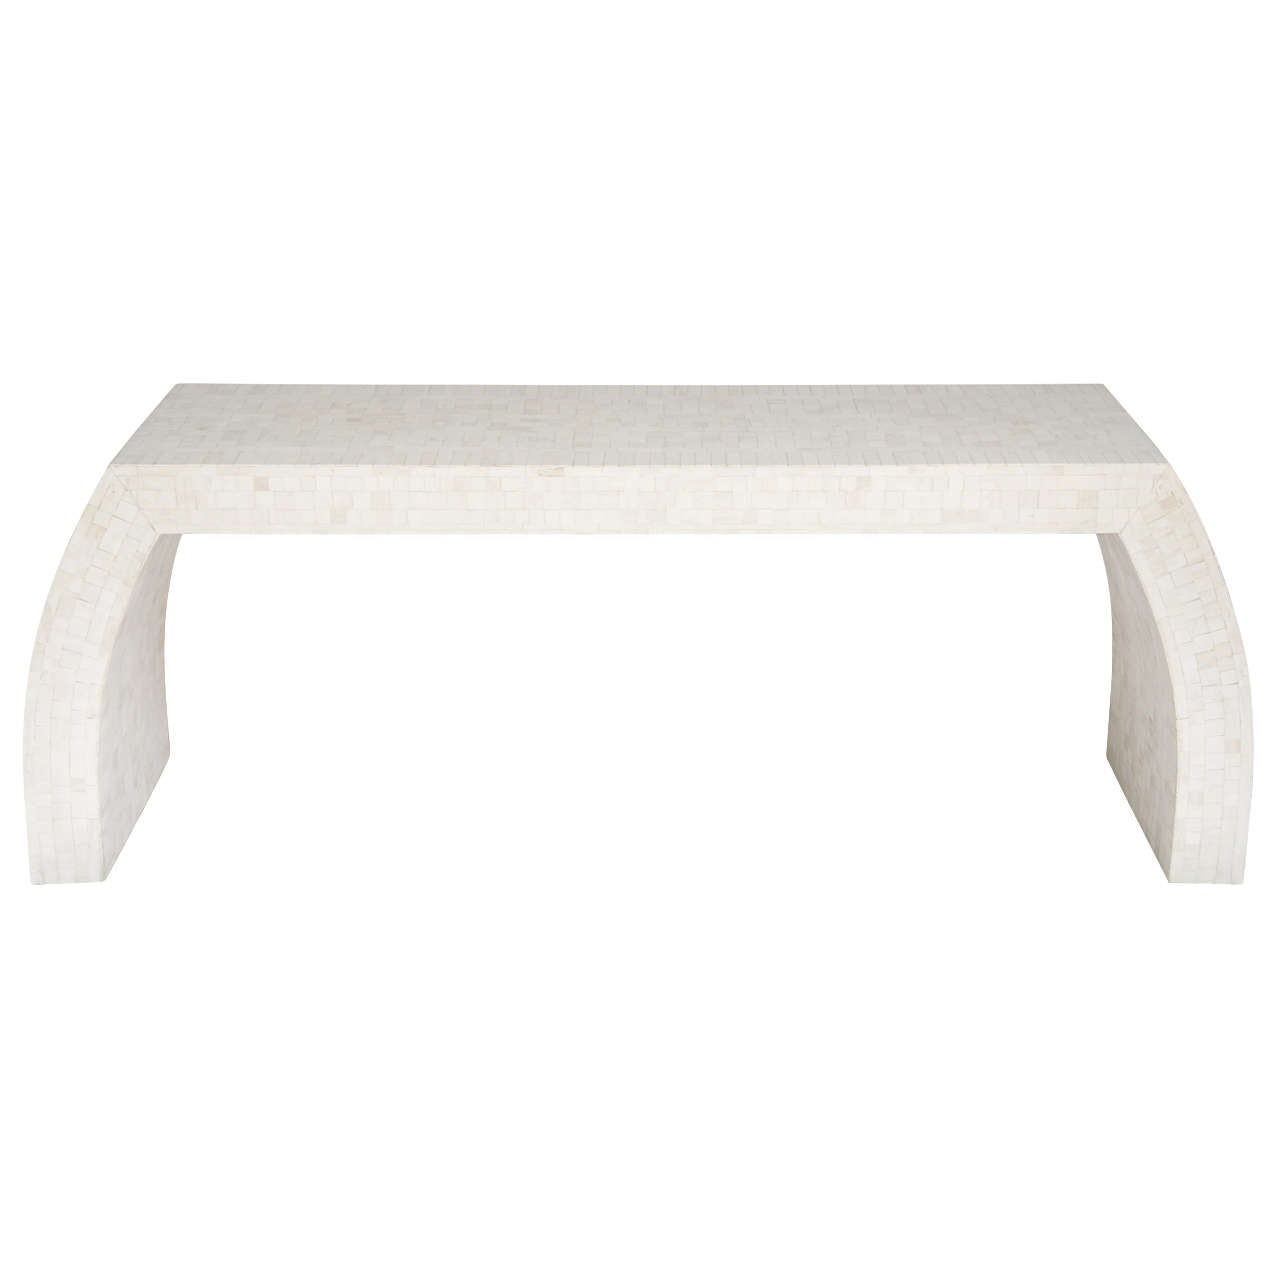 A karl springermaitland smith tesselated white bone console table a karl springermaitland smith tesselated white bone console table 1 geotapseo Images